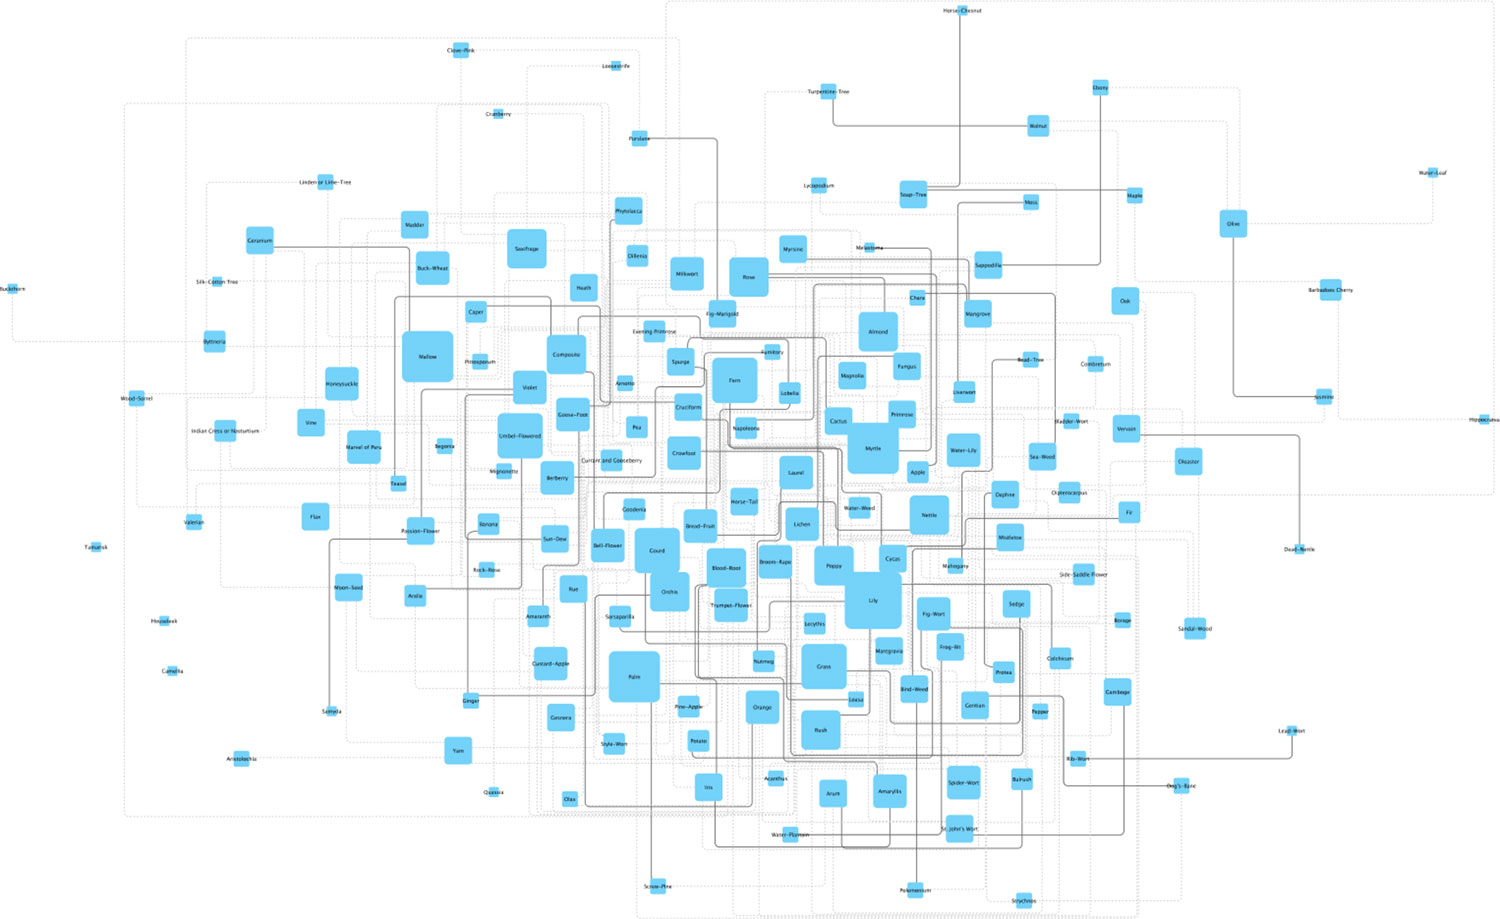 More polished example from Cytoscape